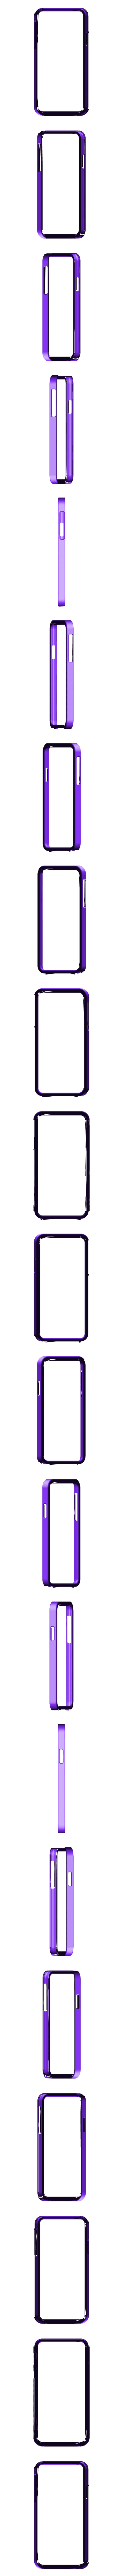 iphonex-bump-pla.stl Download free STL file iPhone X case • 3D print object, Adafruit